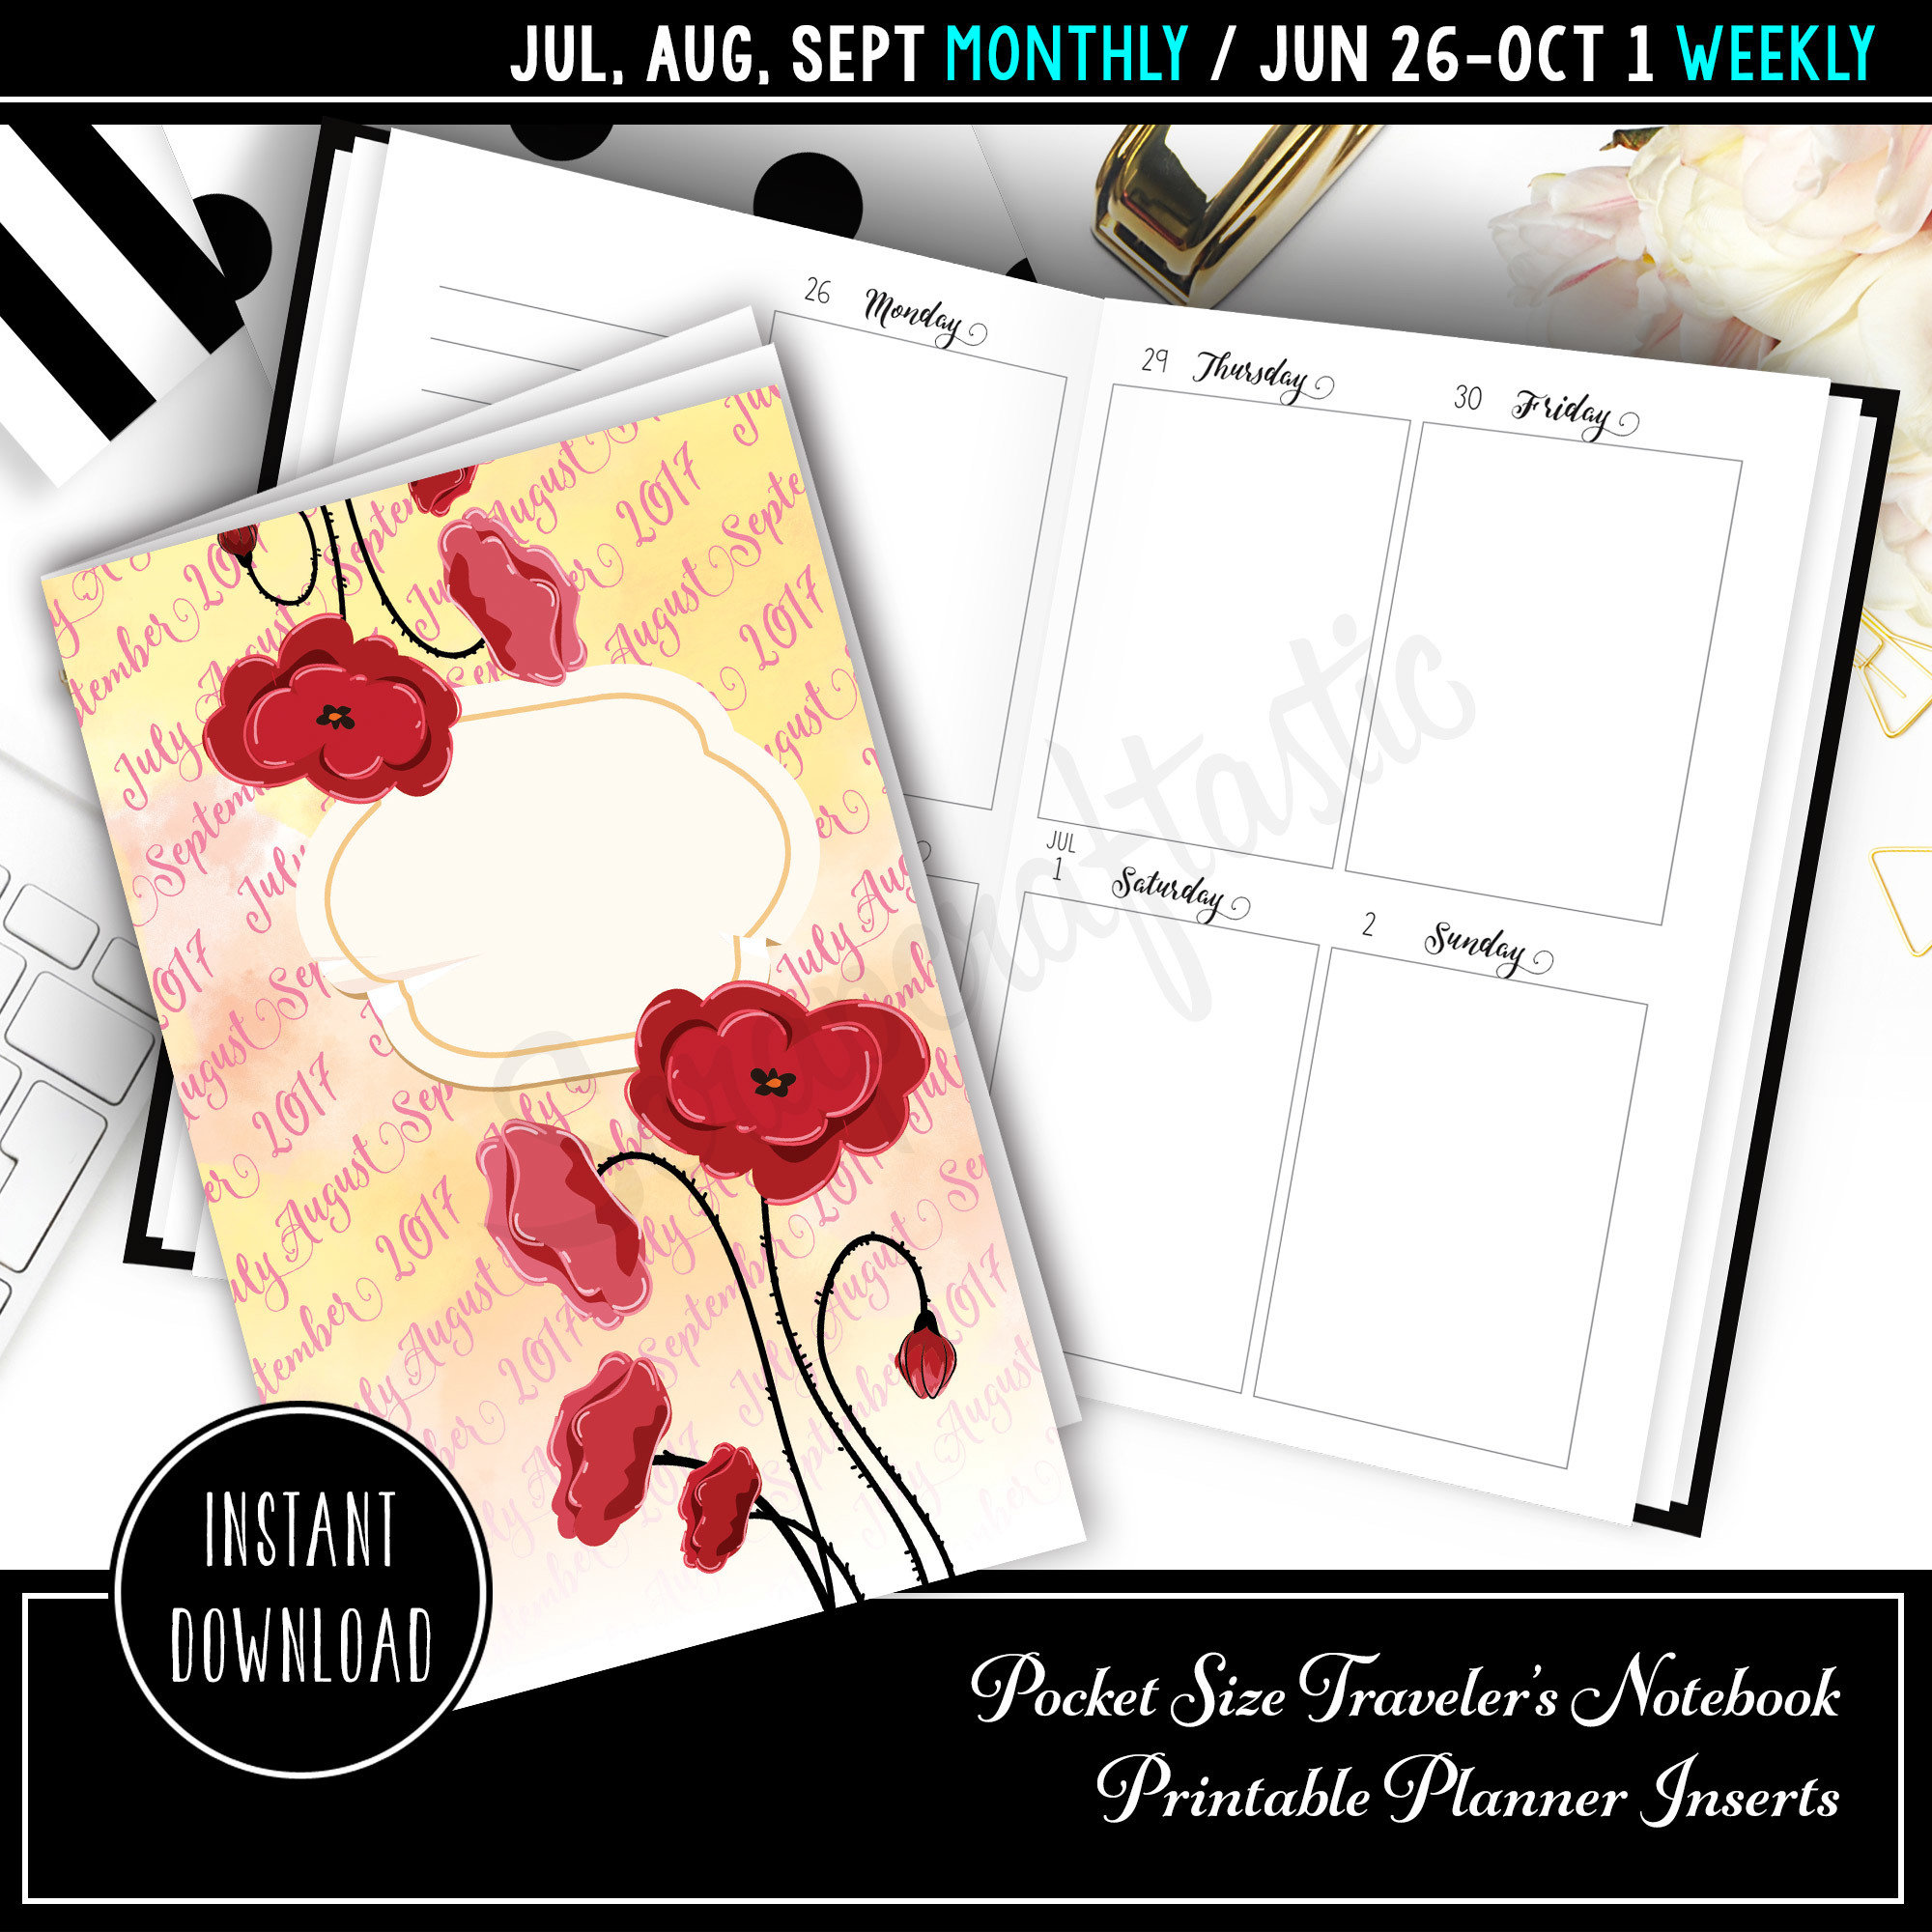 Jul-Sep 2017 Pocket Traveler's Notebook Printable Planner Inserts 10001